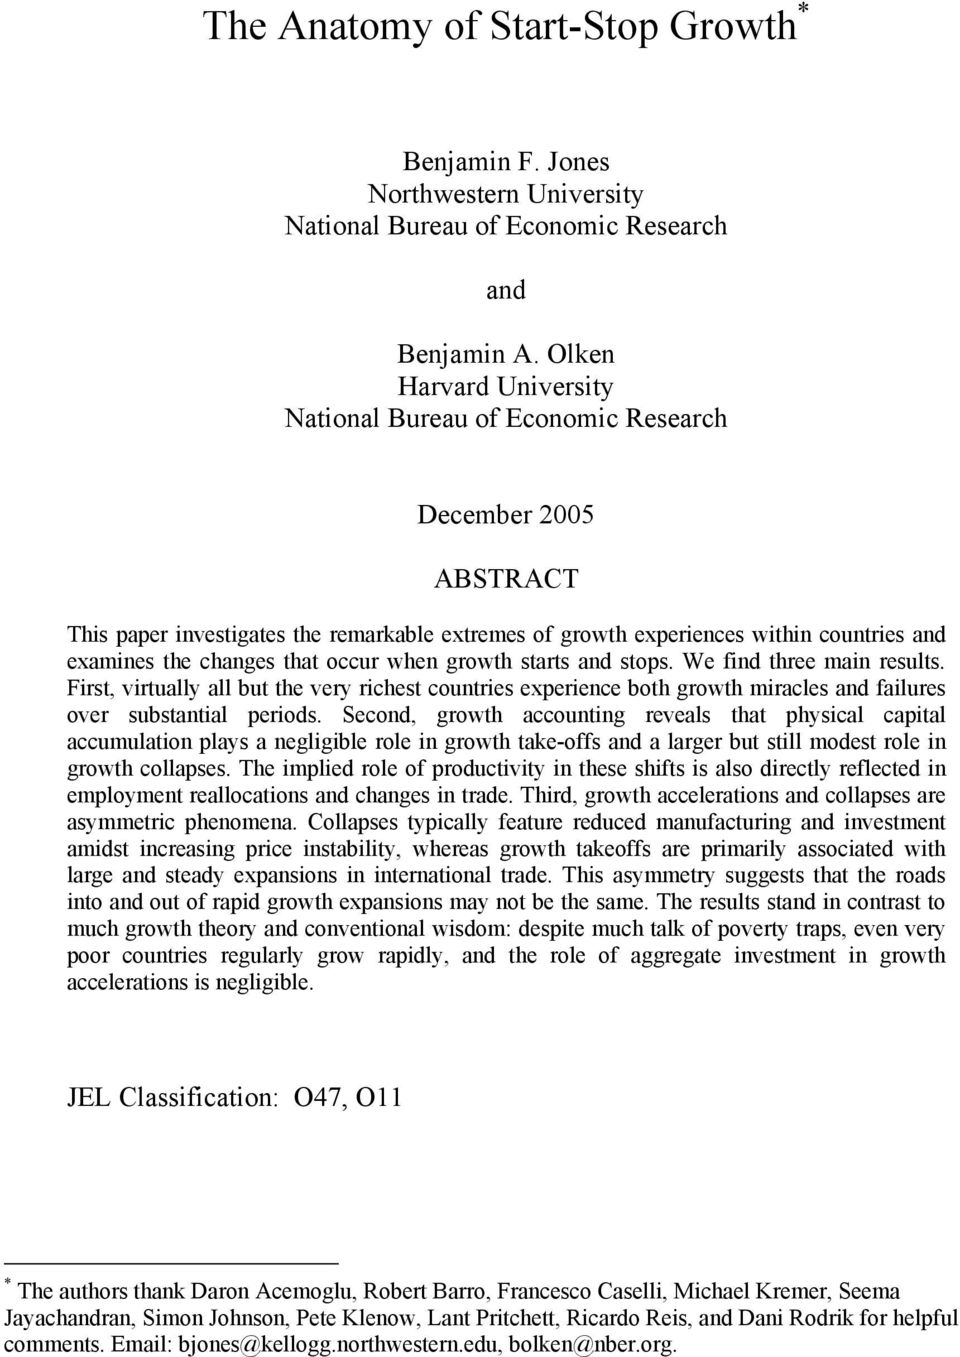 that occur when growth starts and stops. We find three main results. First, virtually all but the very richest countries experience both growth miracles and failures over substantial periods.